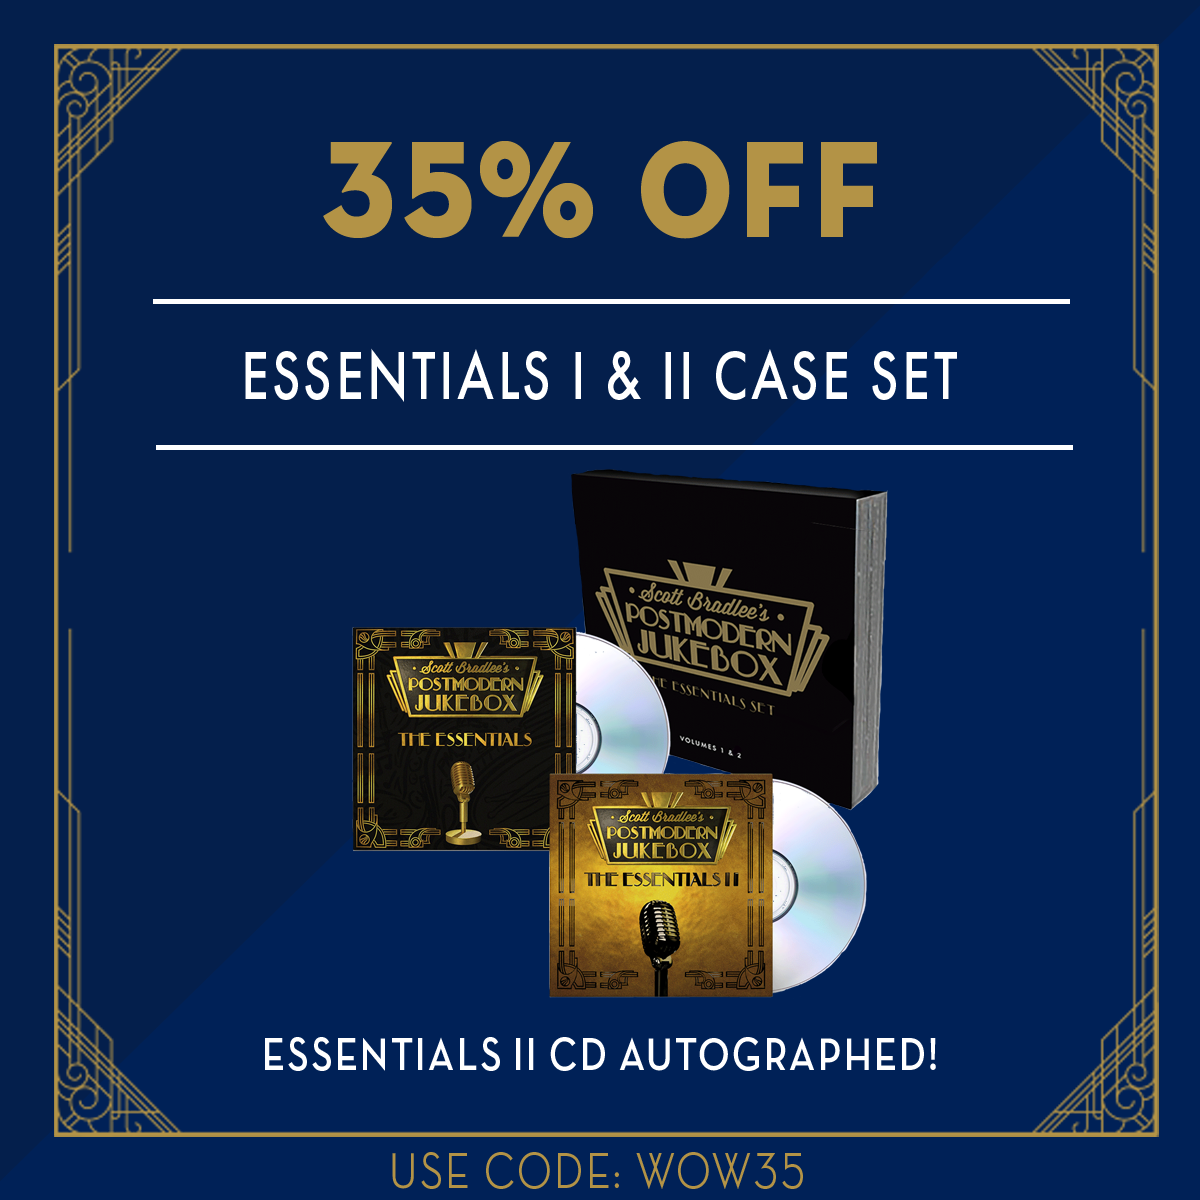 Postmodern Jukebox Essentials Greatest Hits Bundle